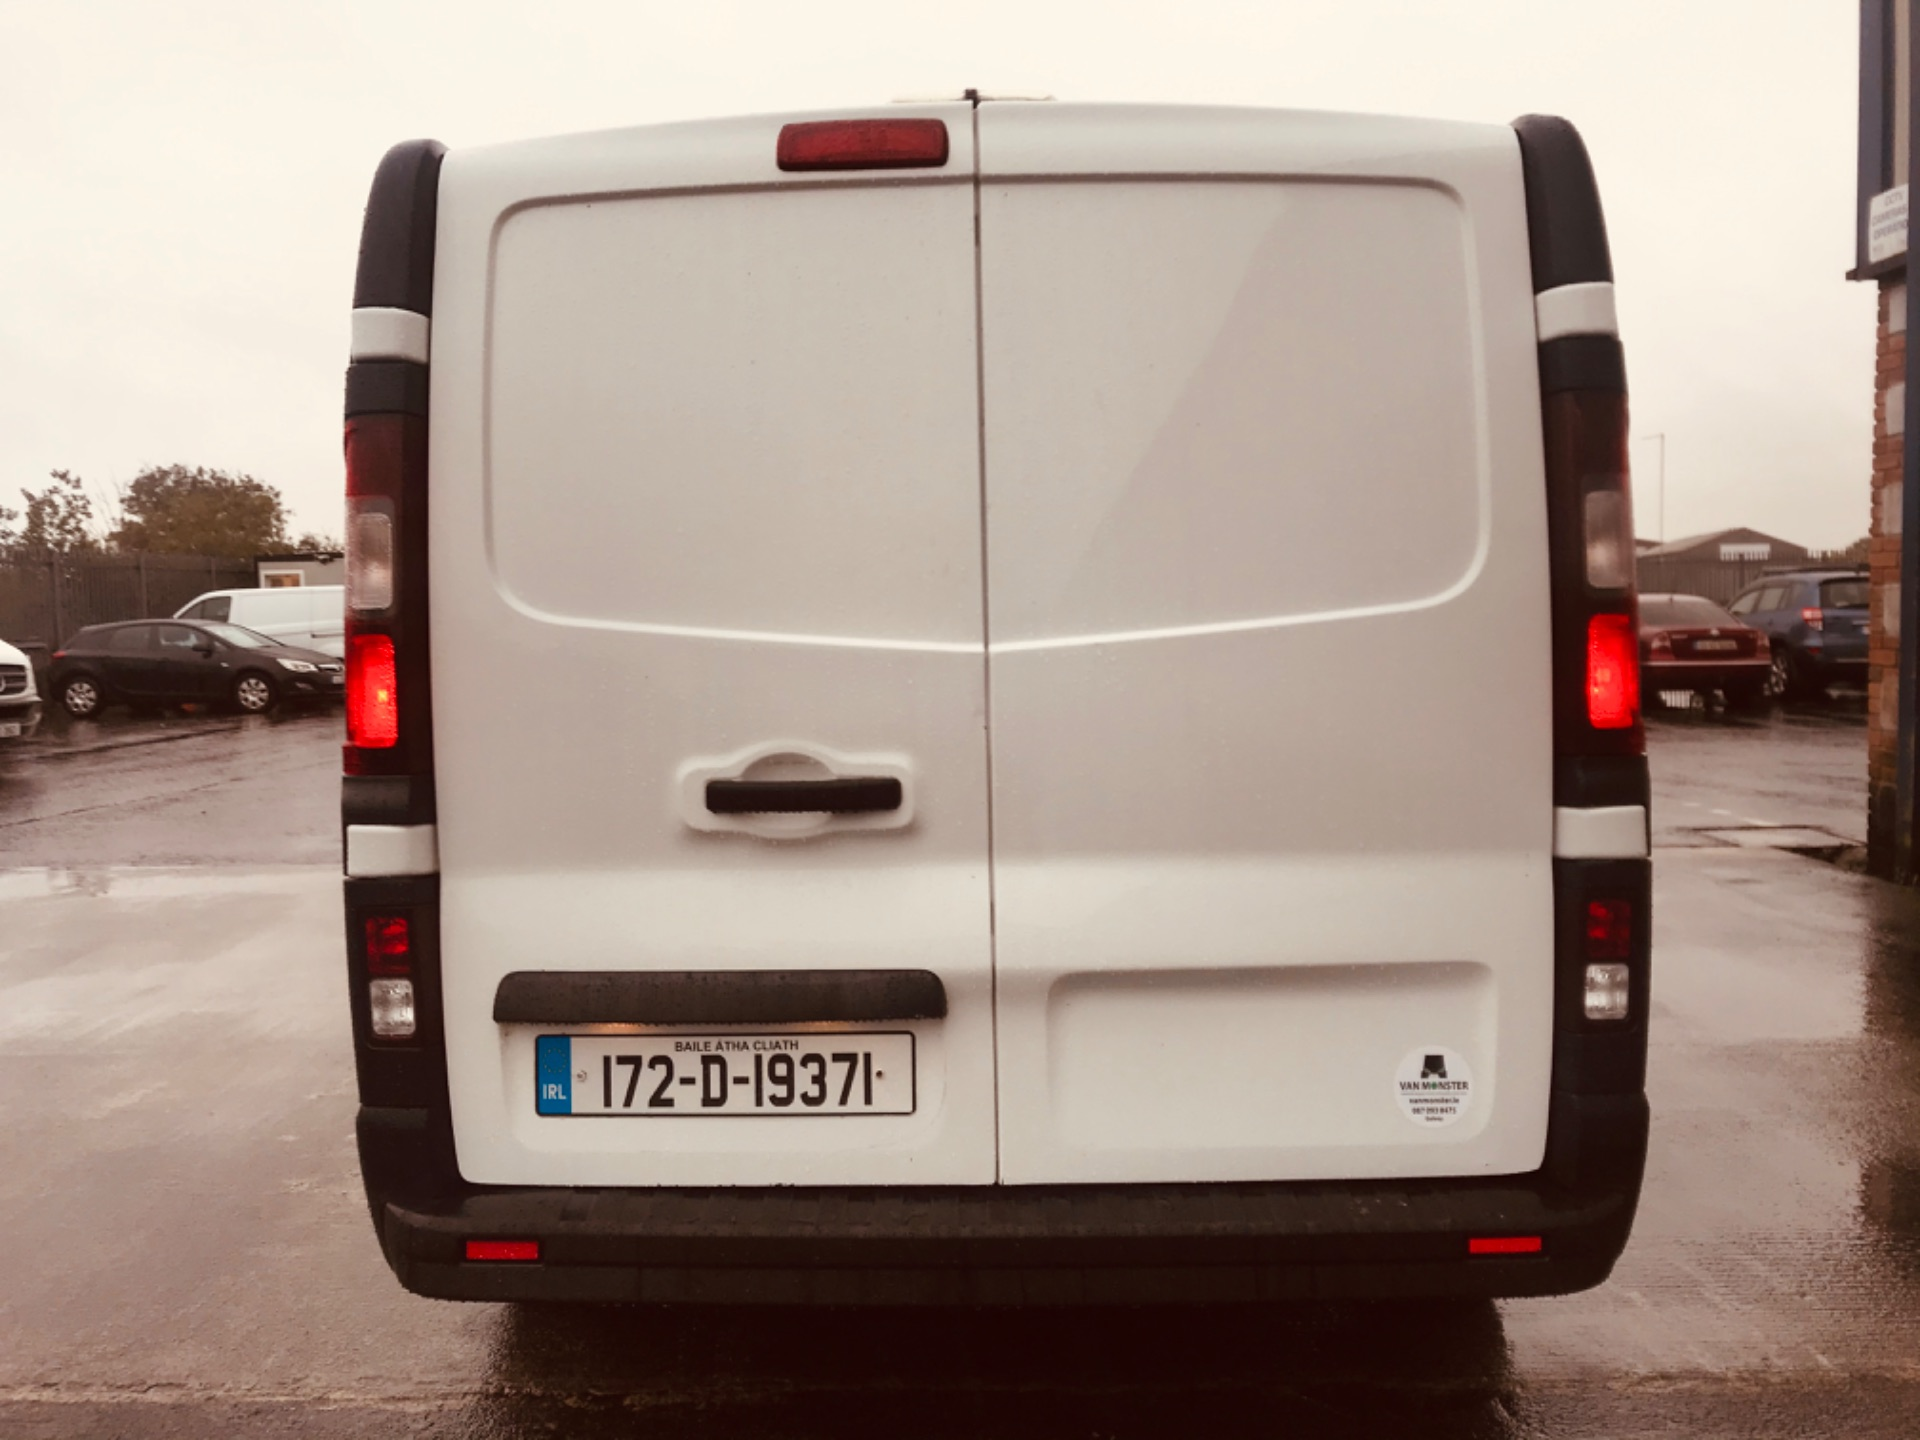 2017 Renault Trafic LL29 DCI 120 Business 3DR (172D19371) Image 7